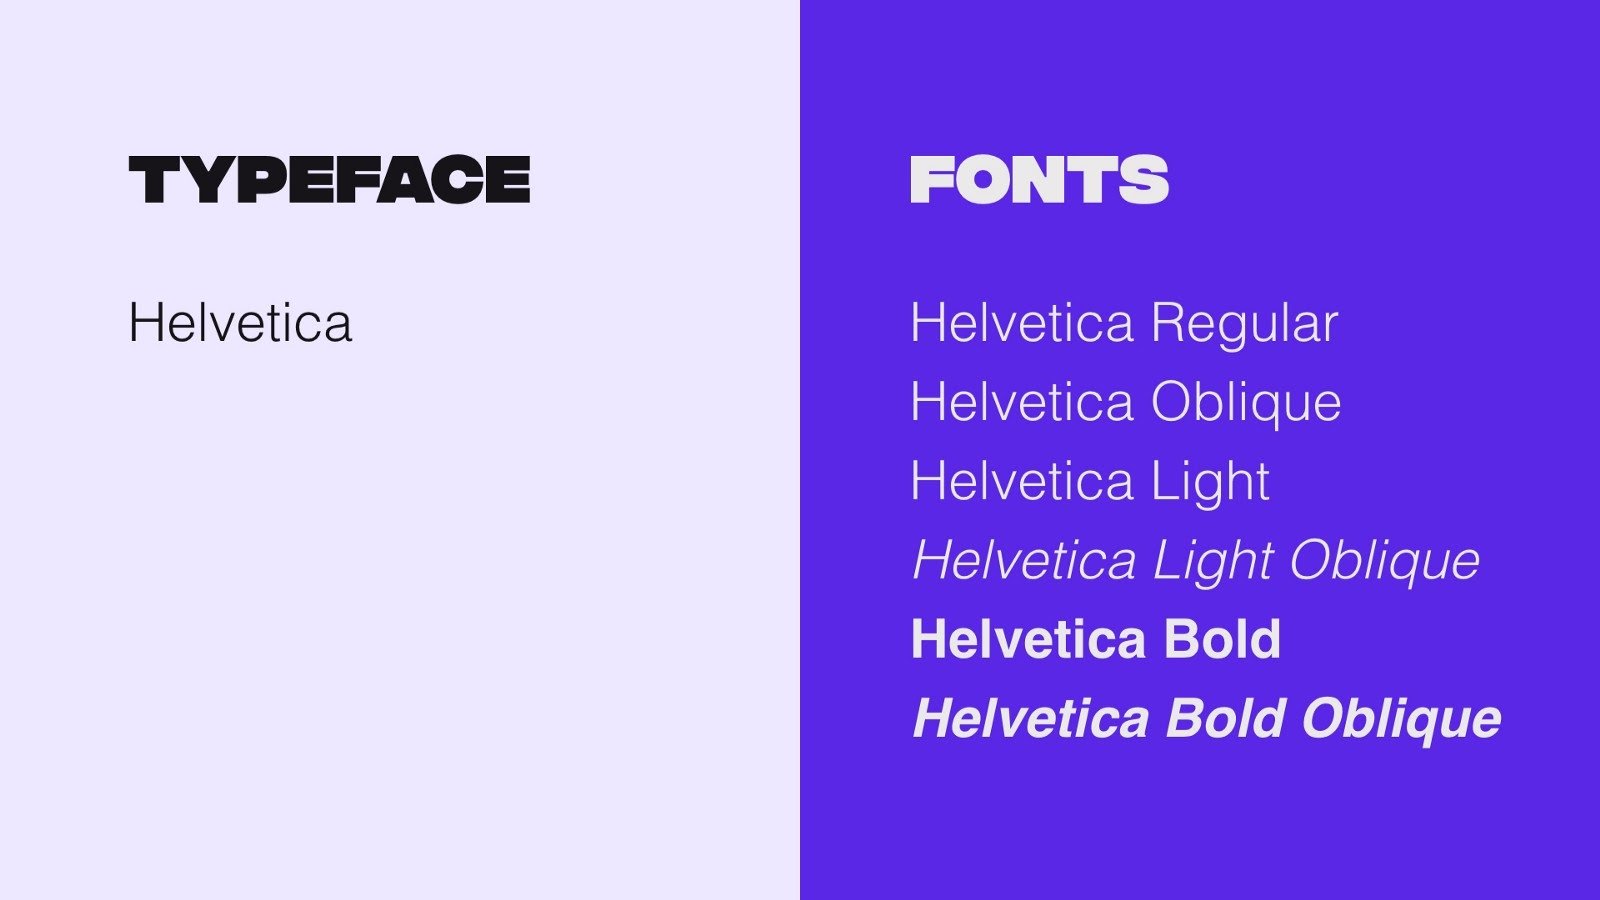 An example of a typeface vs a font